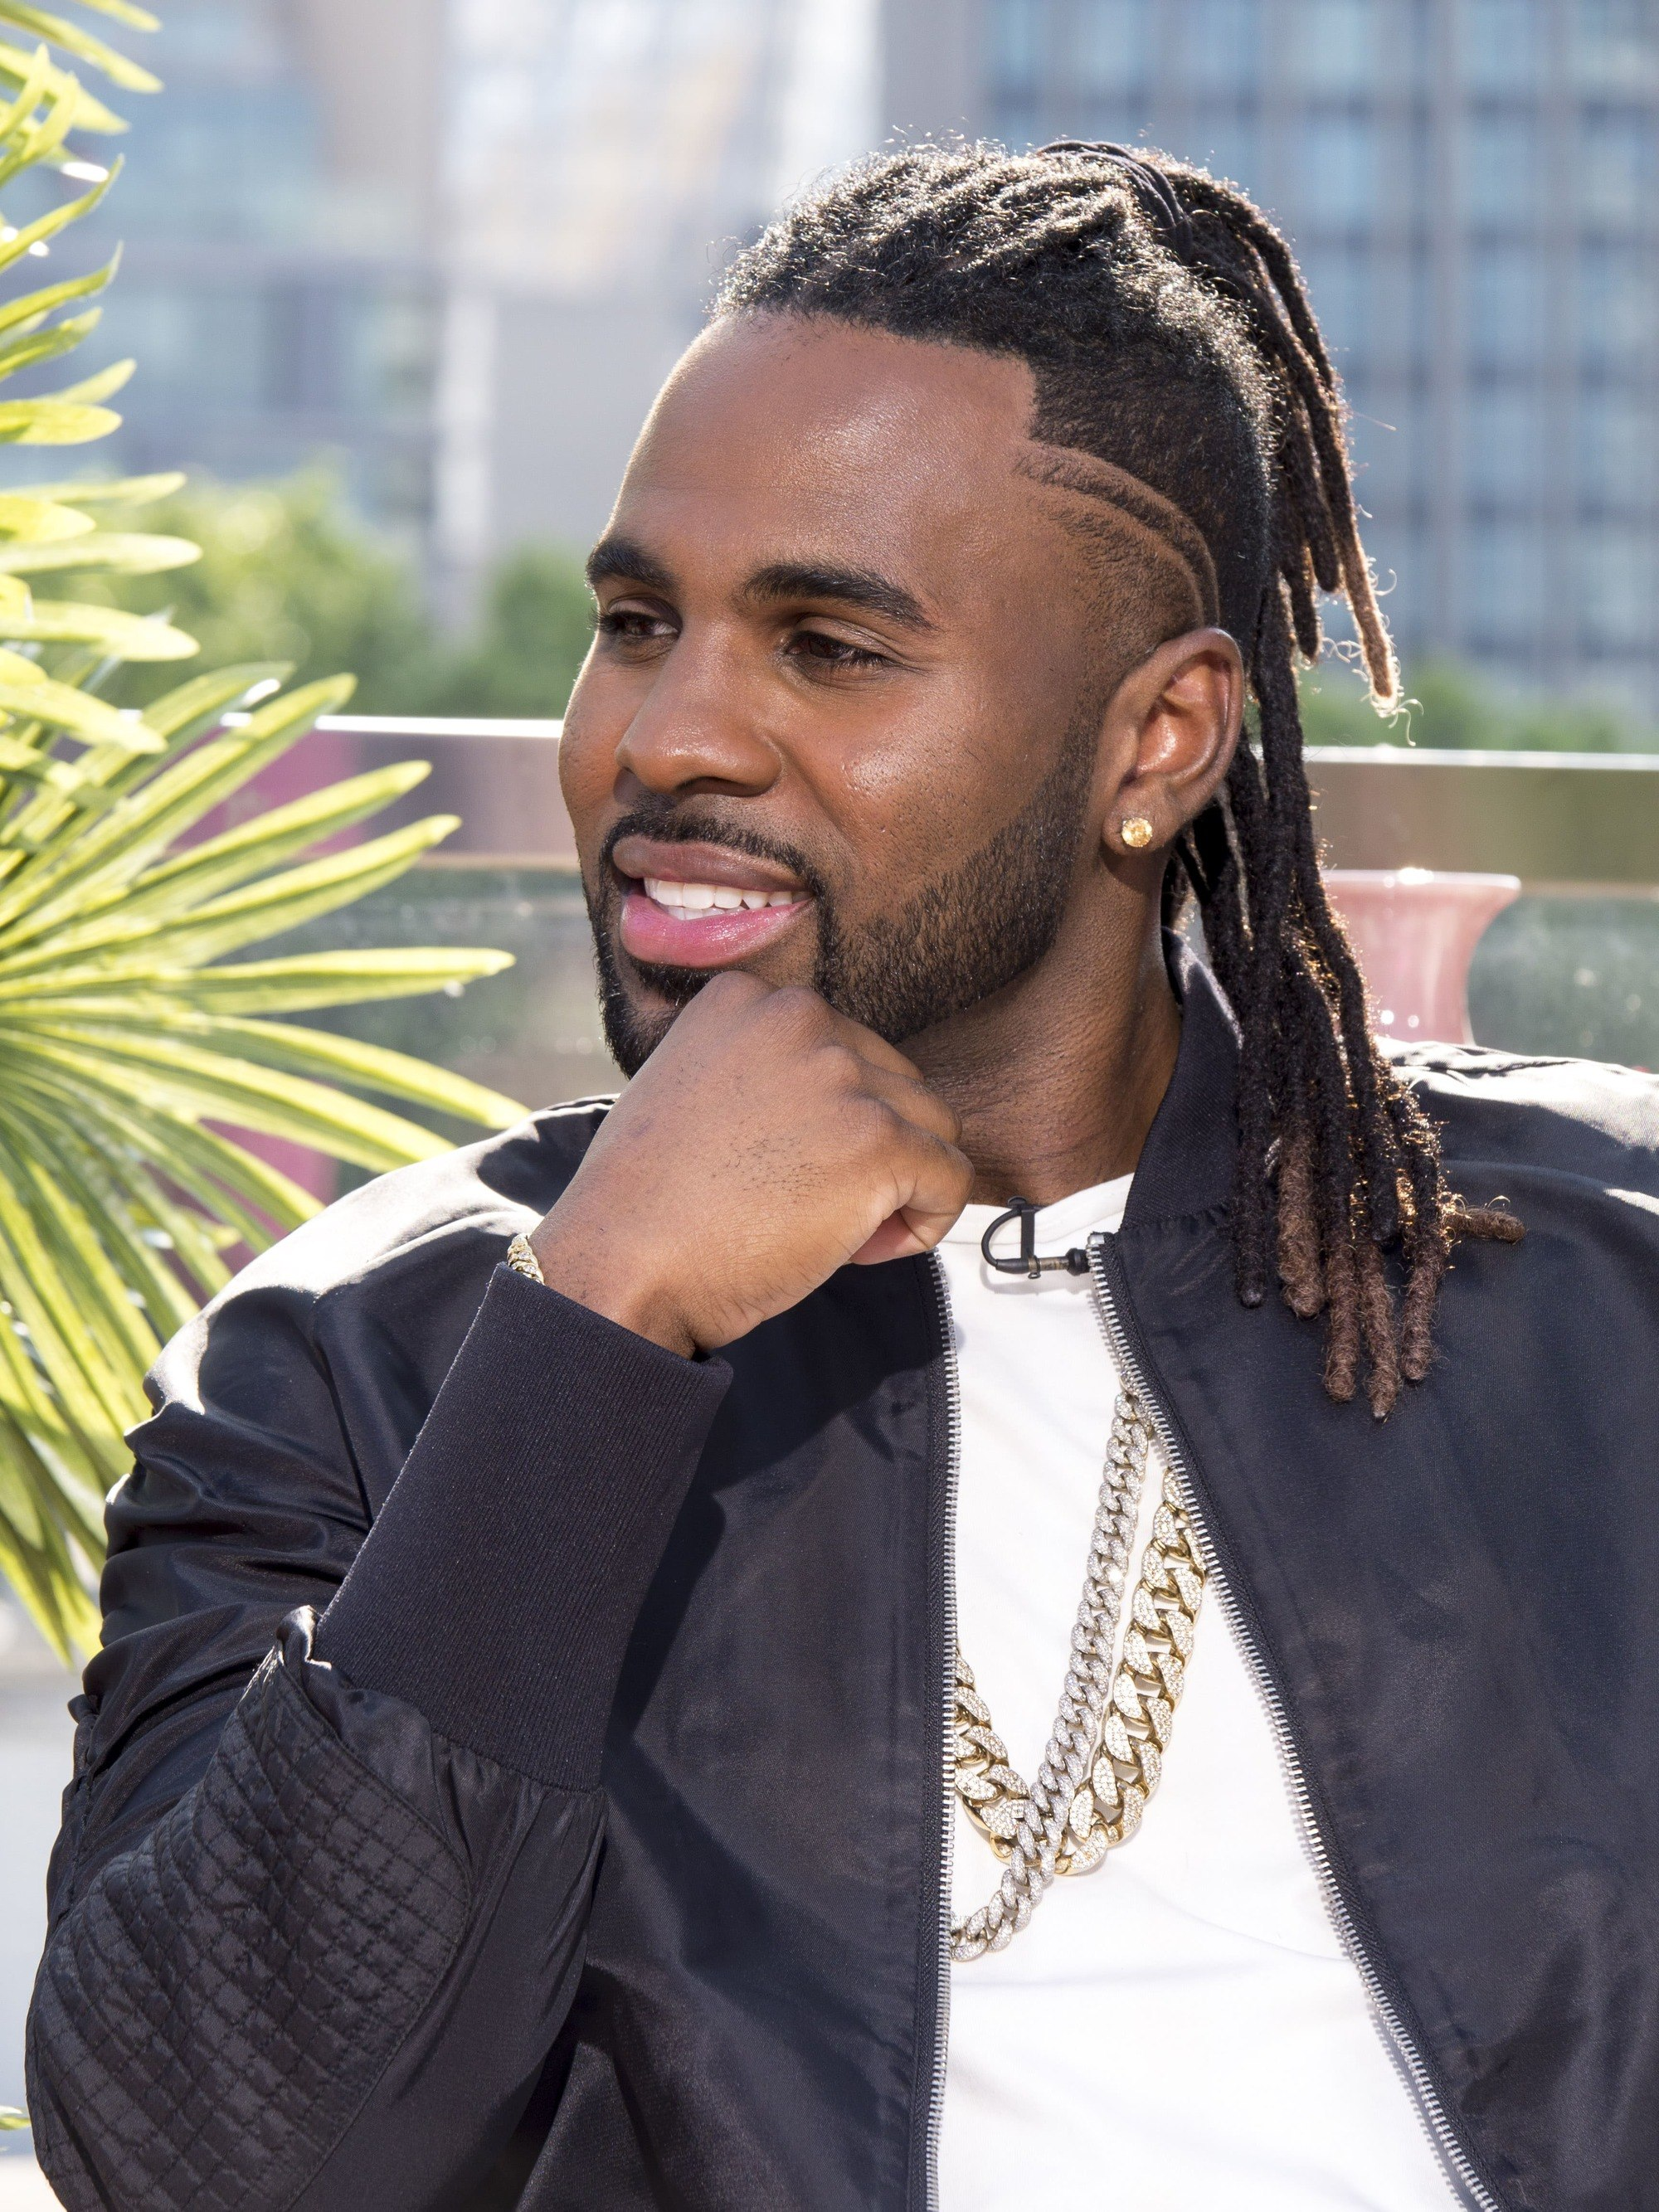 Jason Derulo Hairstyle : jason, derulo, hairstyle, Dreadlock, Hairstyles, Season, (2020, Guide)